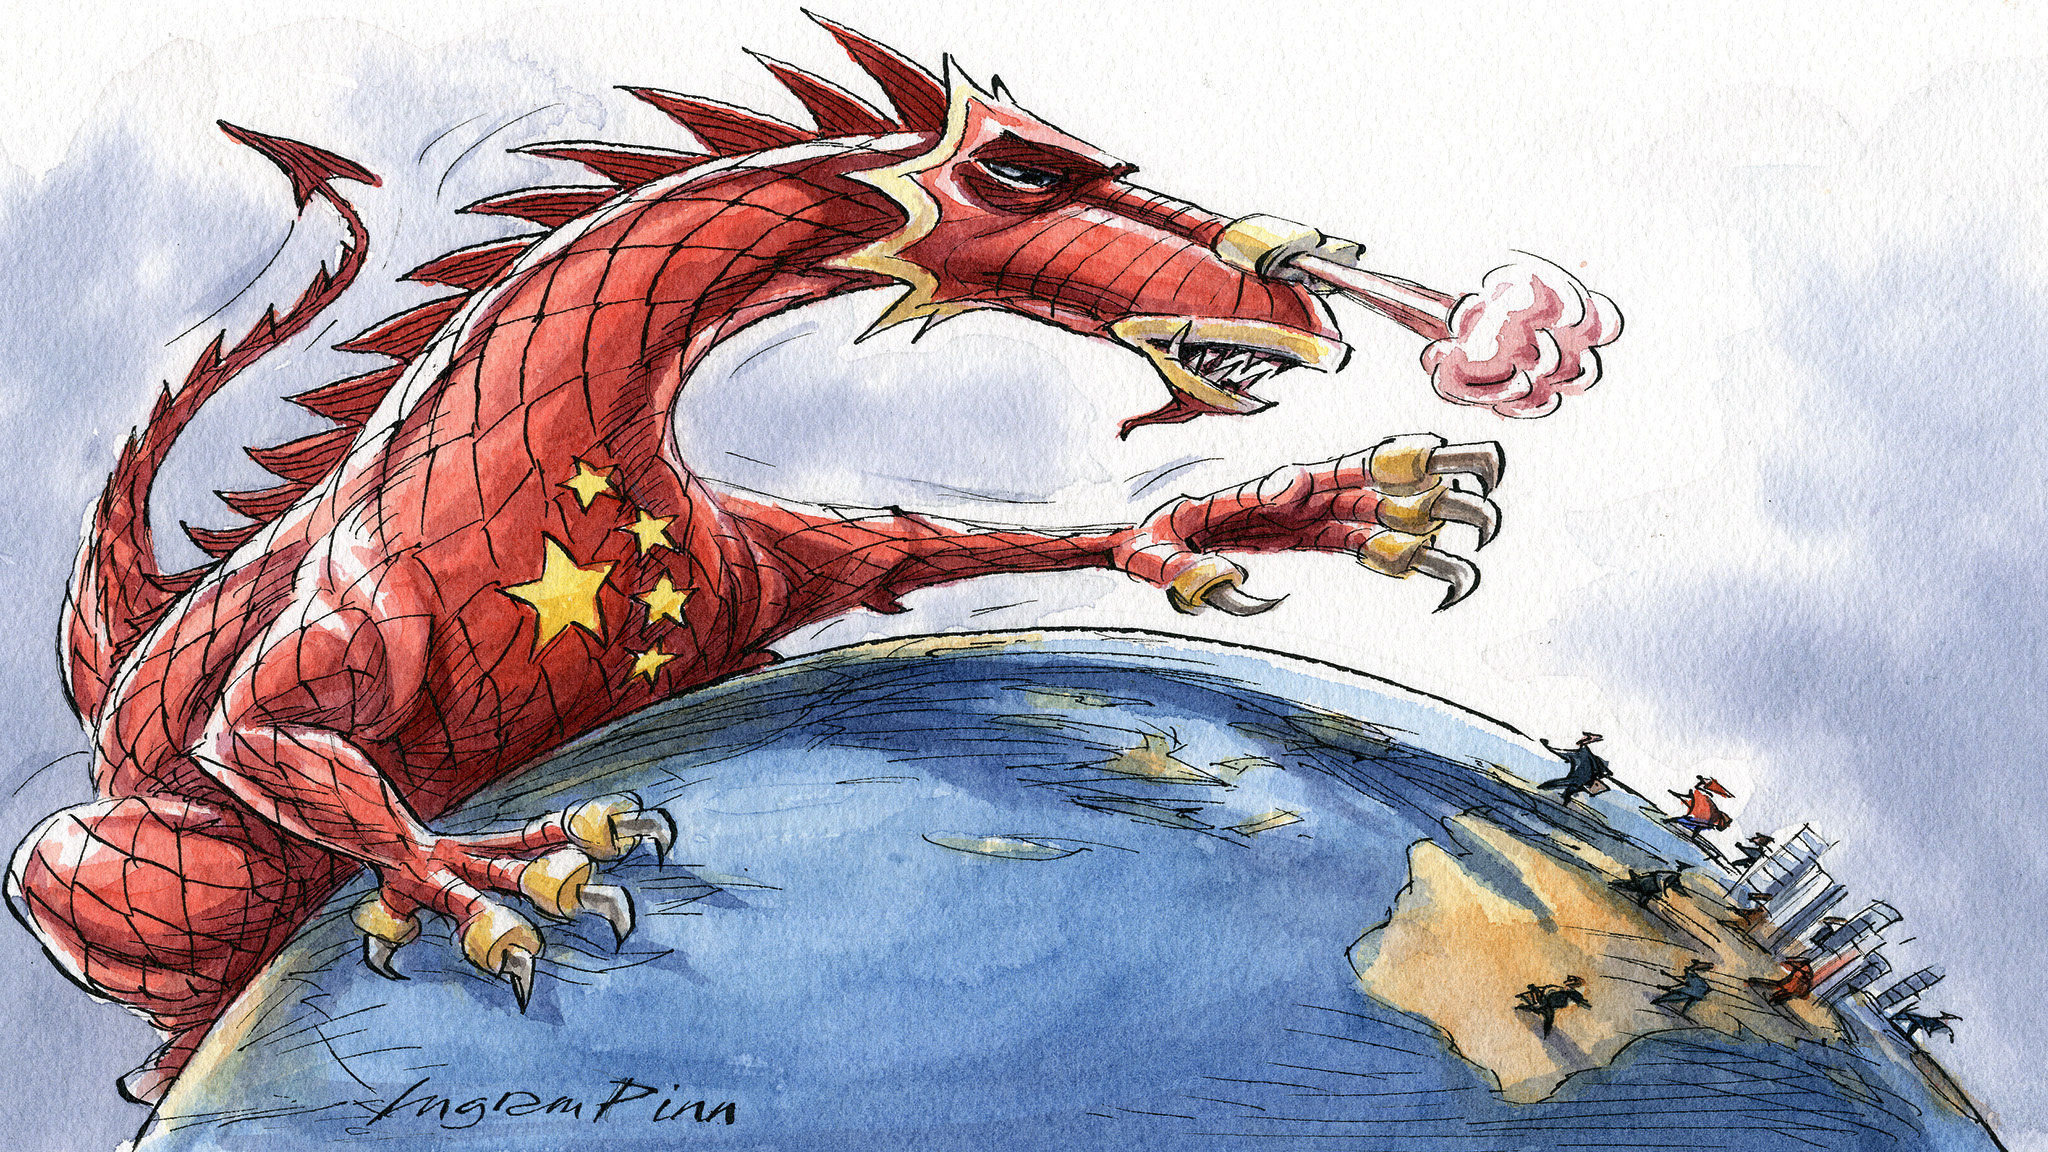 China is taking its ideological fight abroad